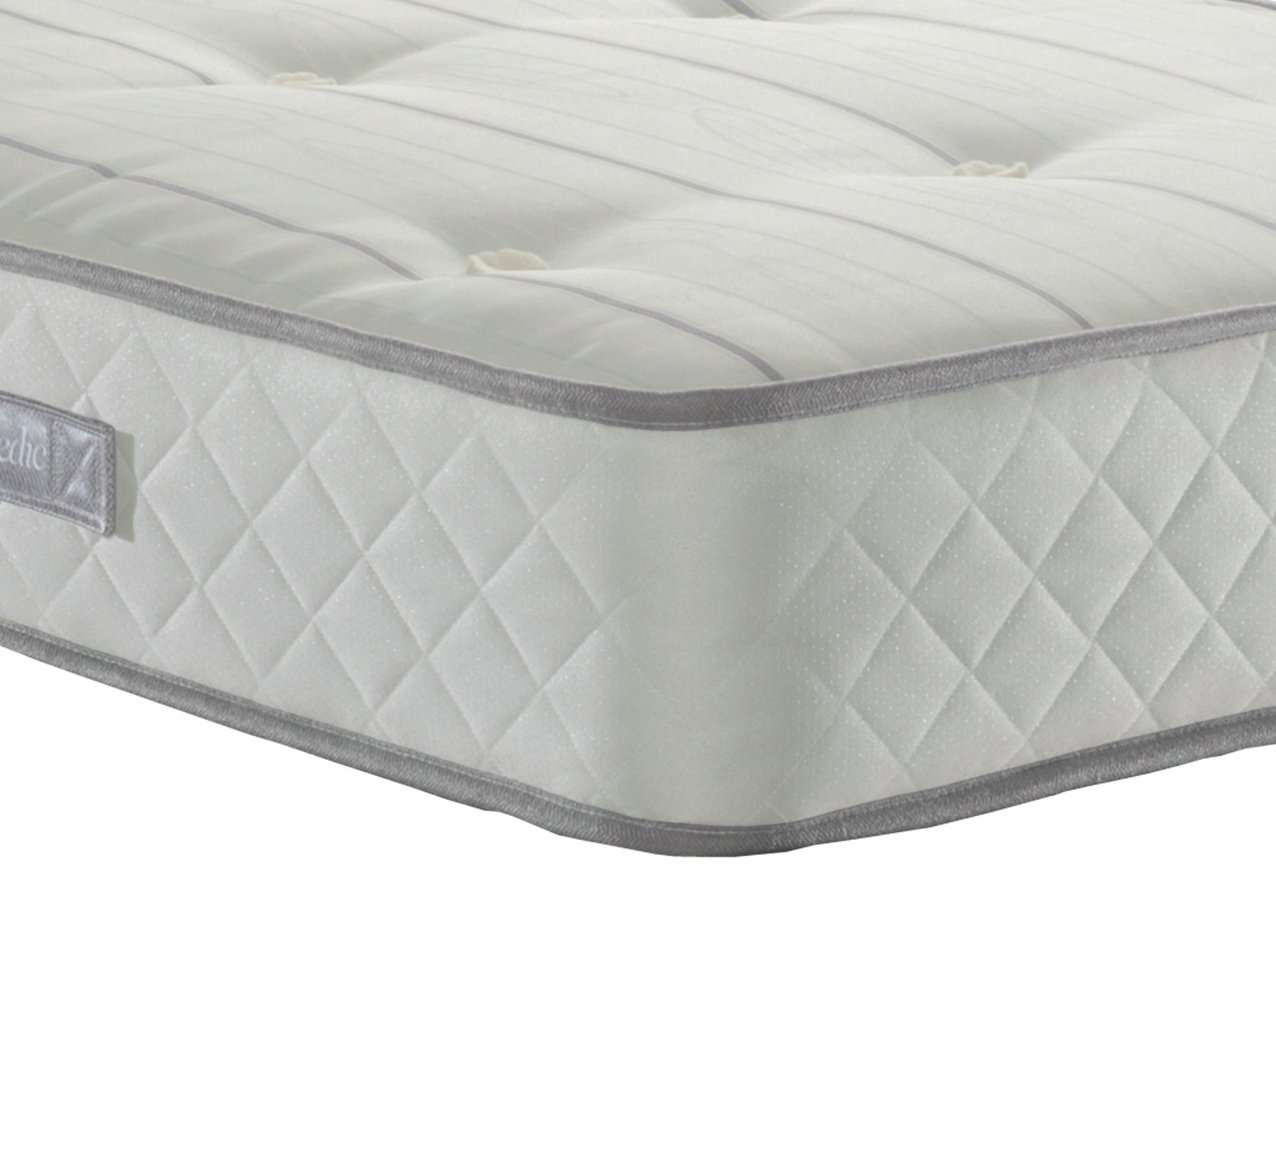 Sealy Posturepedic Backcare Elite Mattress Sealy Posturepedic Firm Ortho Single Memory Foam Mattress